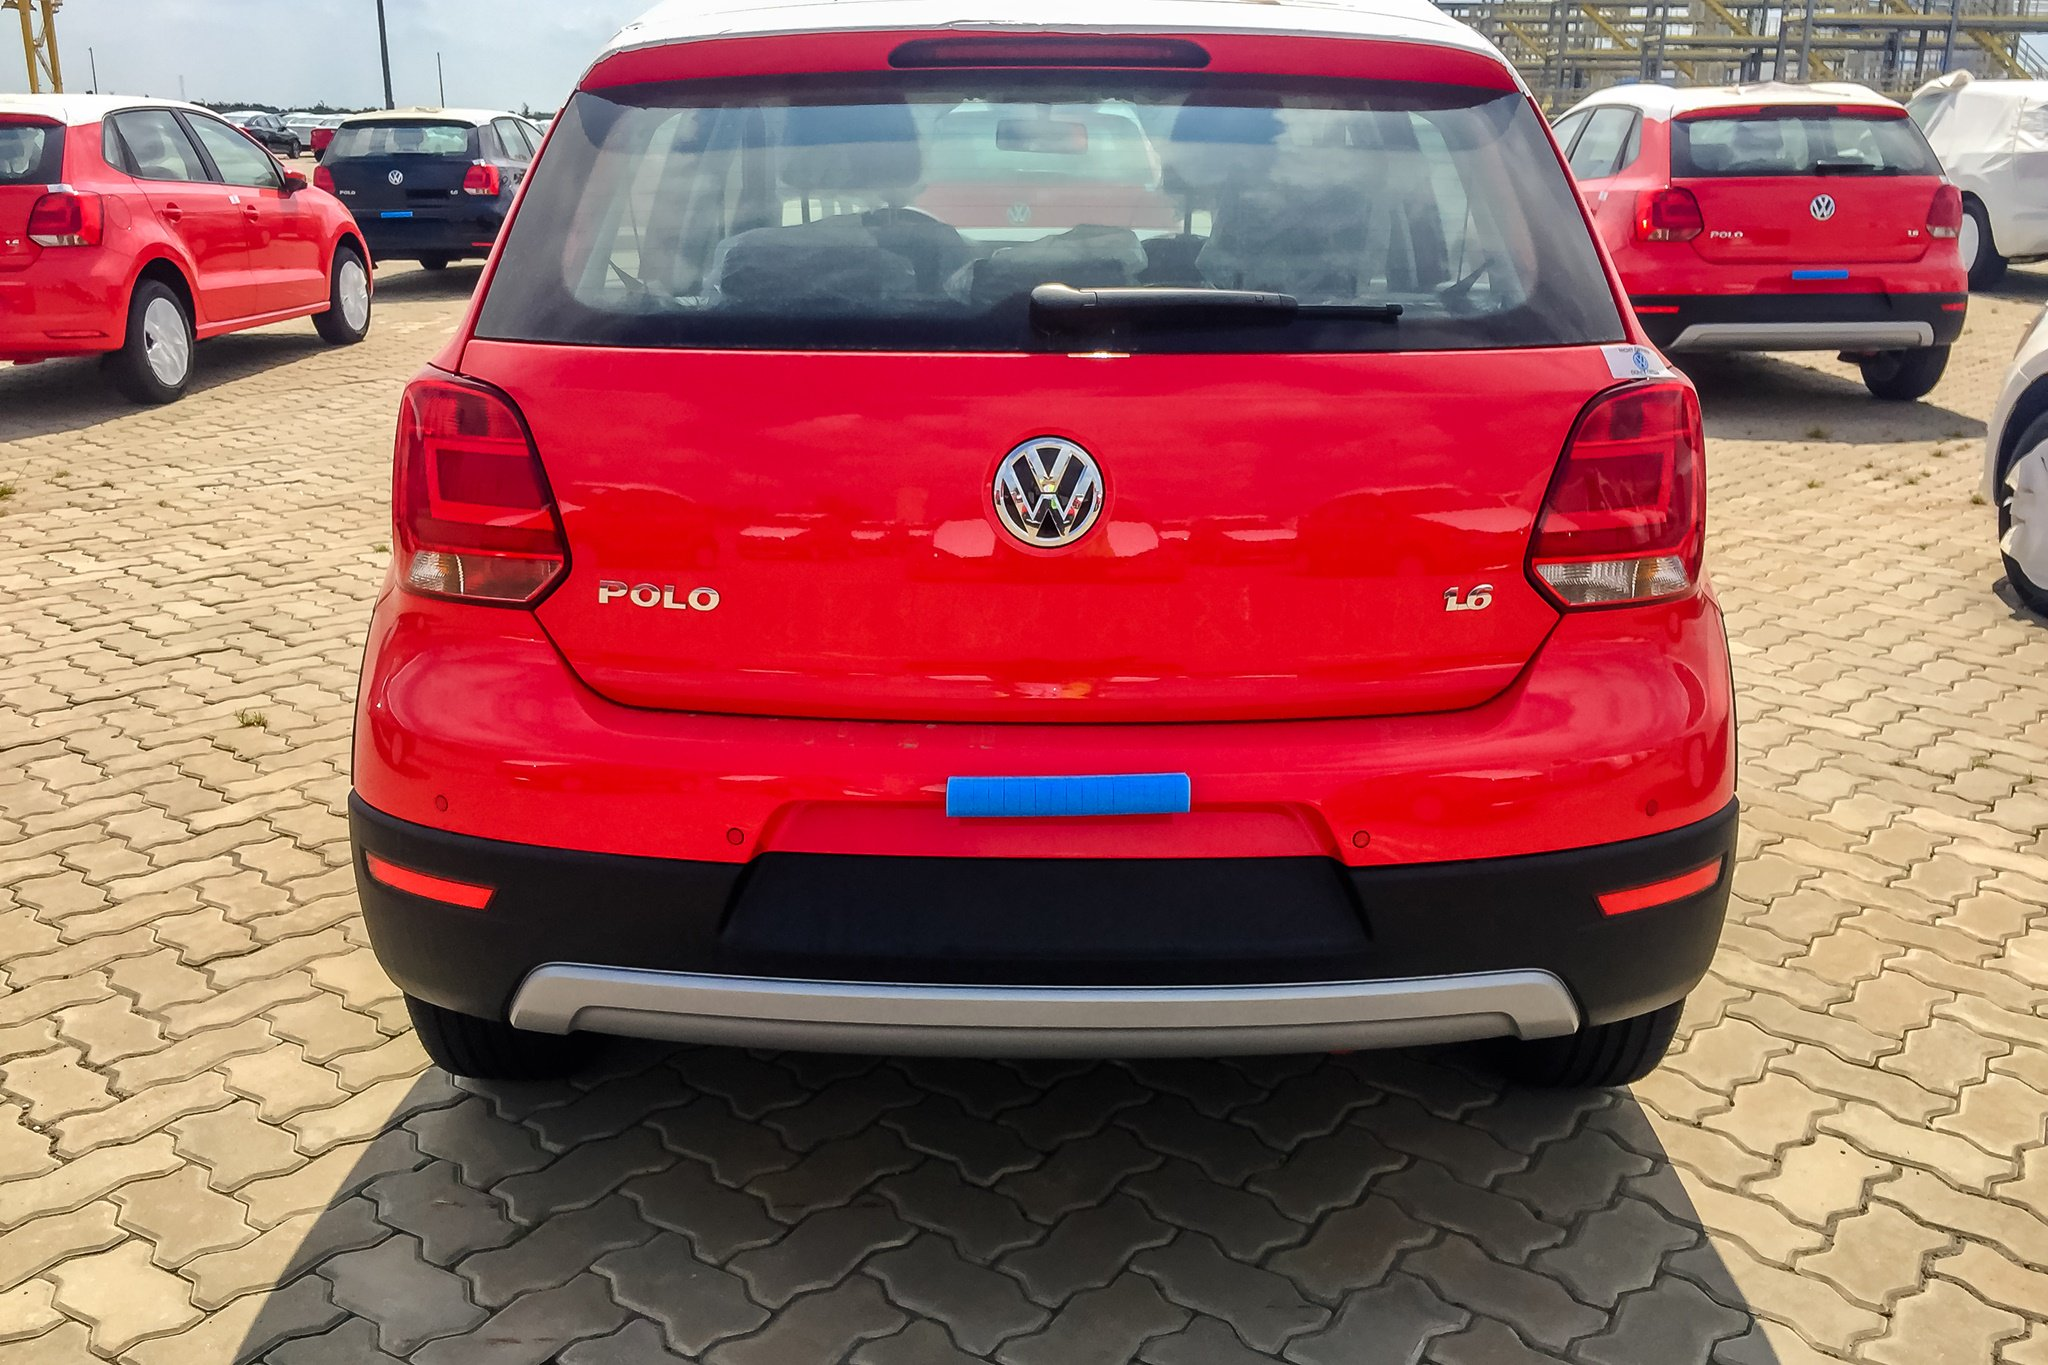 Volks Polo